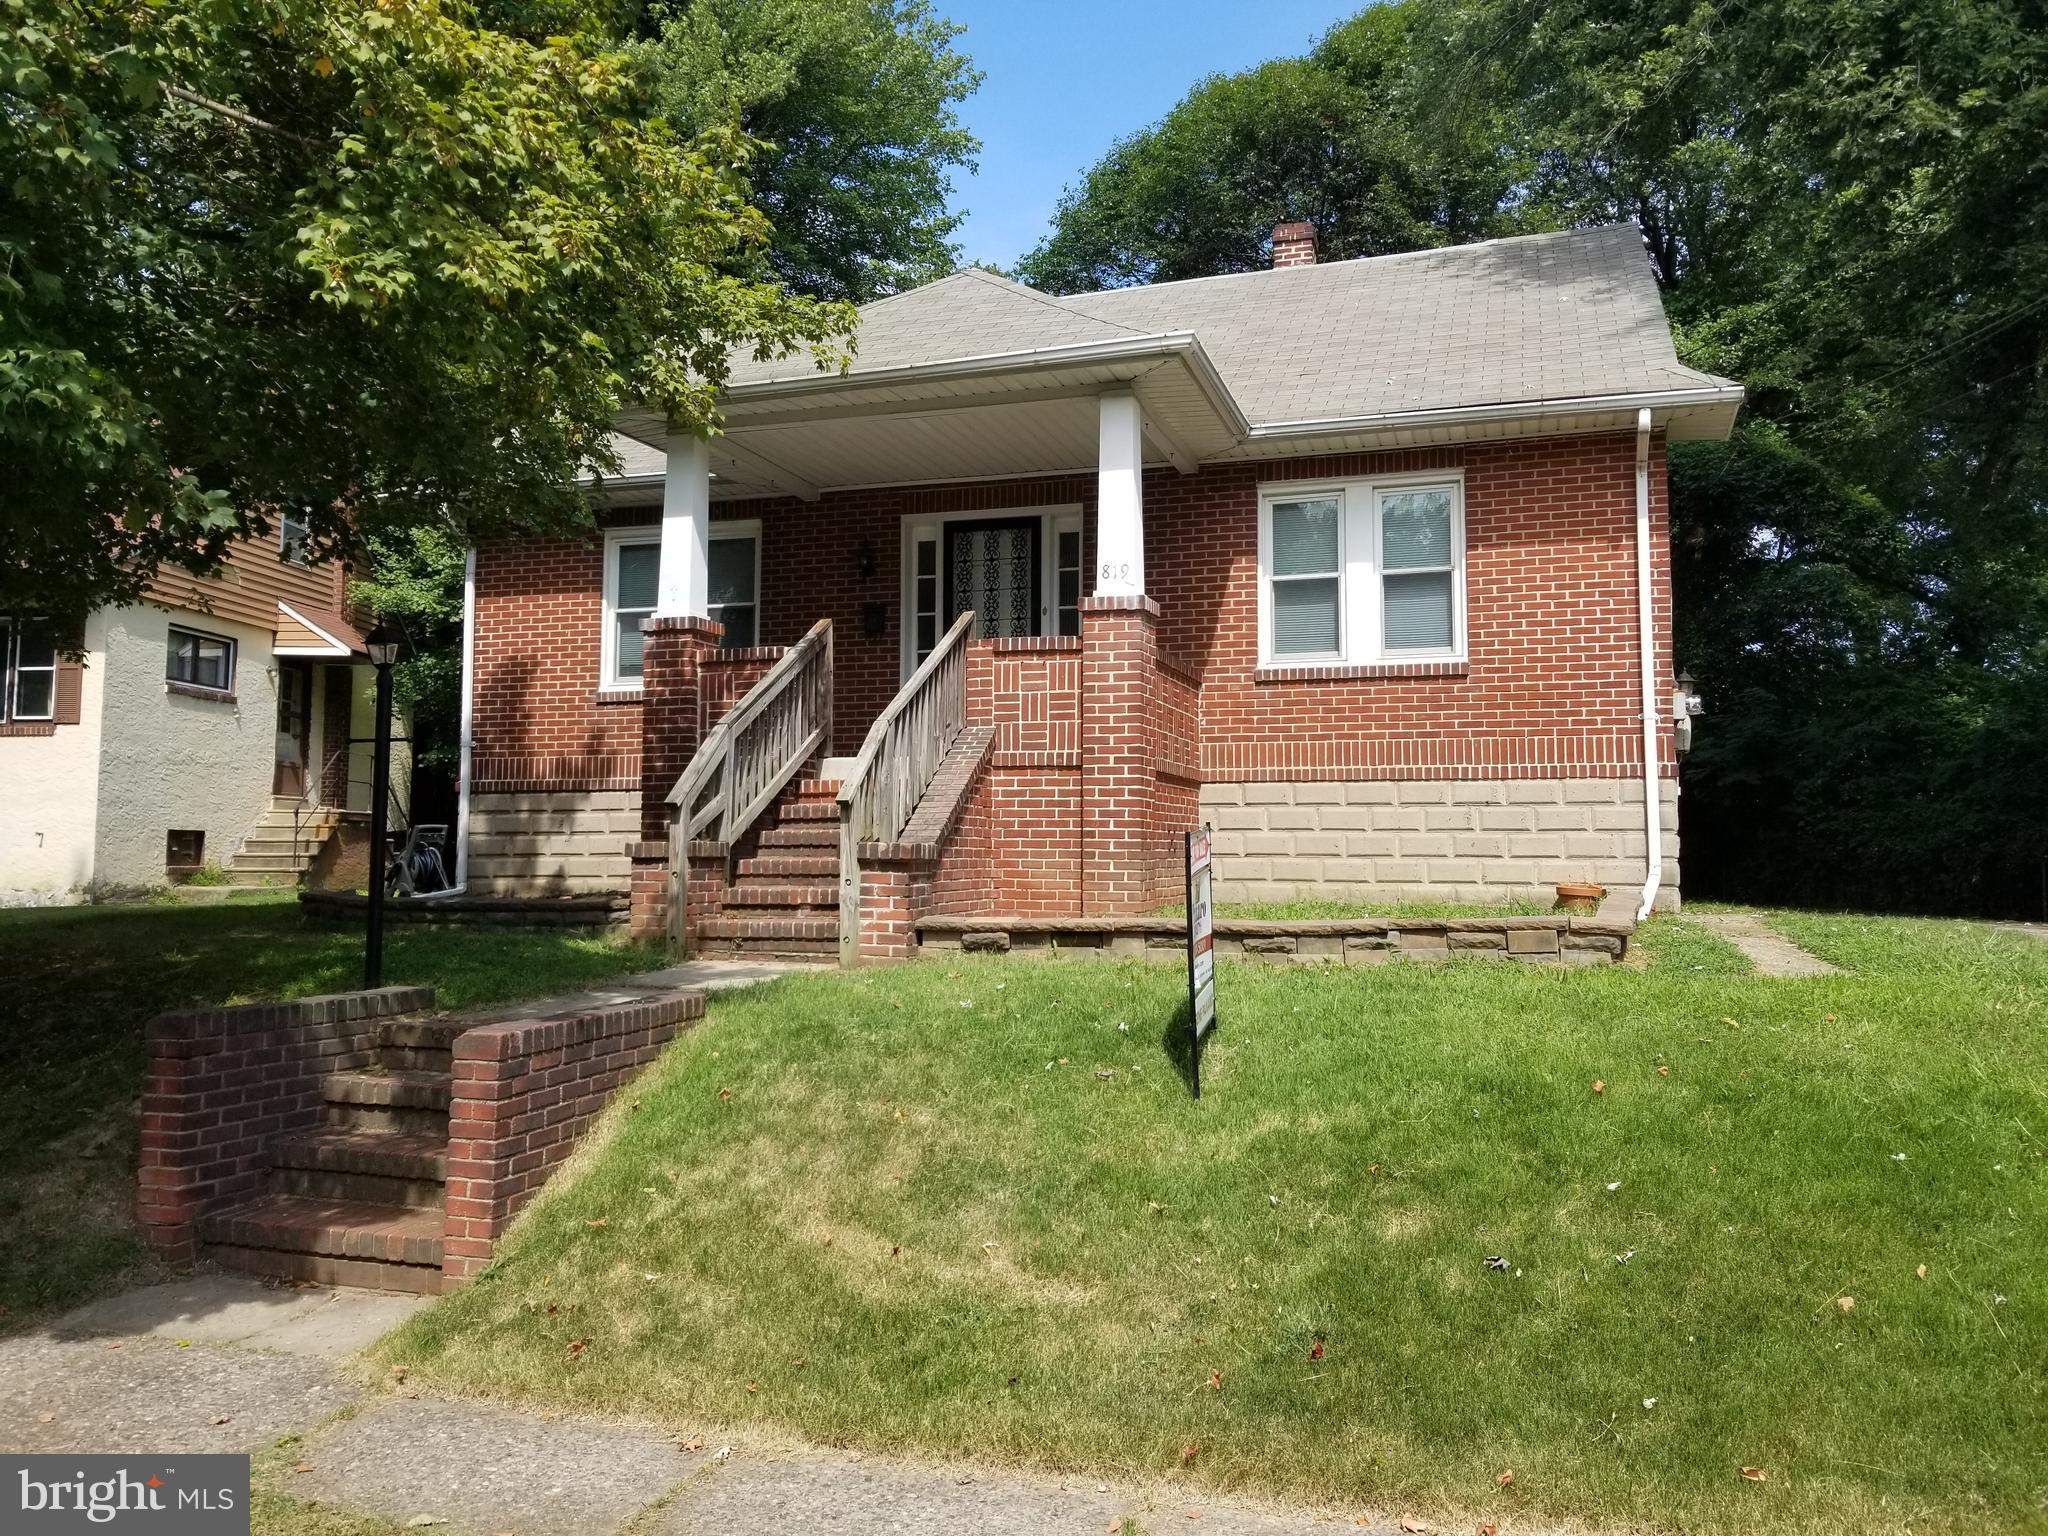 819 LAMBERT AVENUE, MOUNT EPHRAIM, NJ 08059